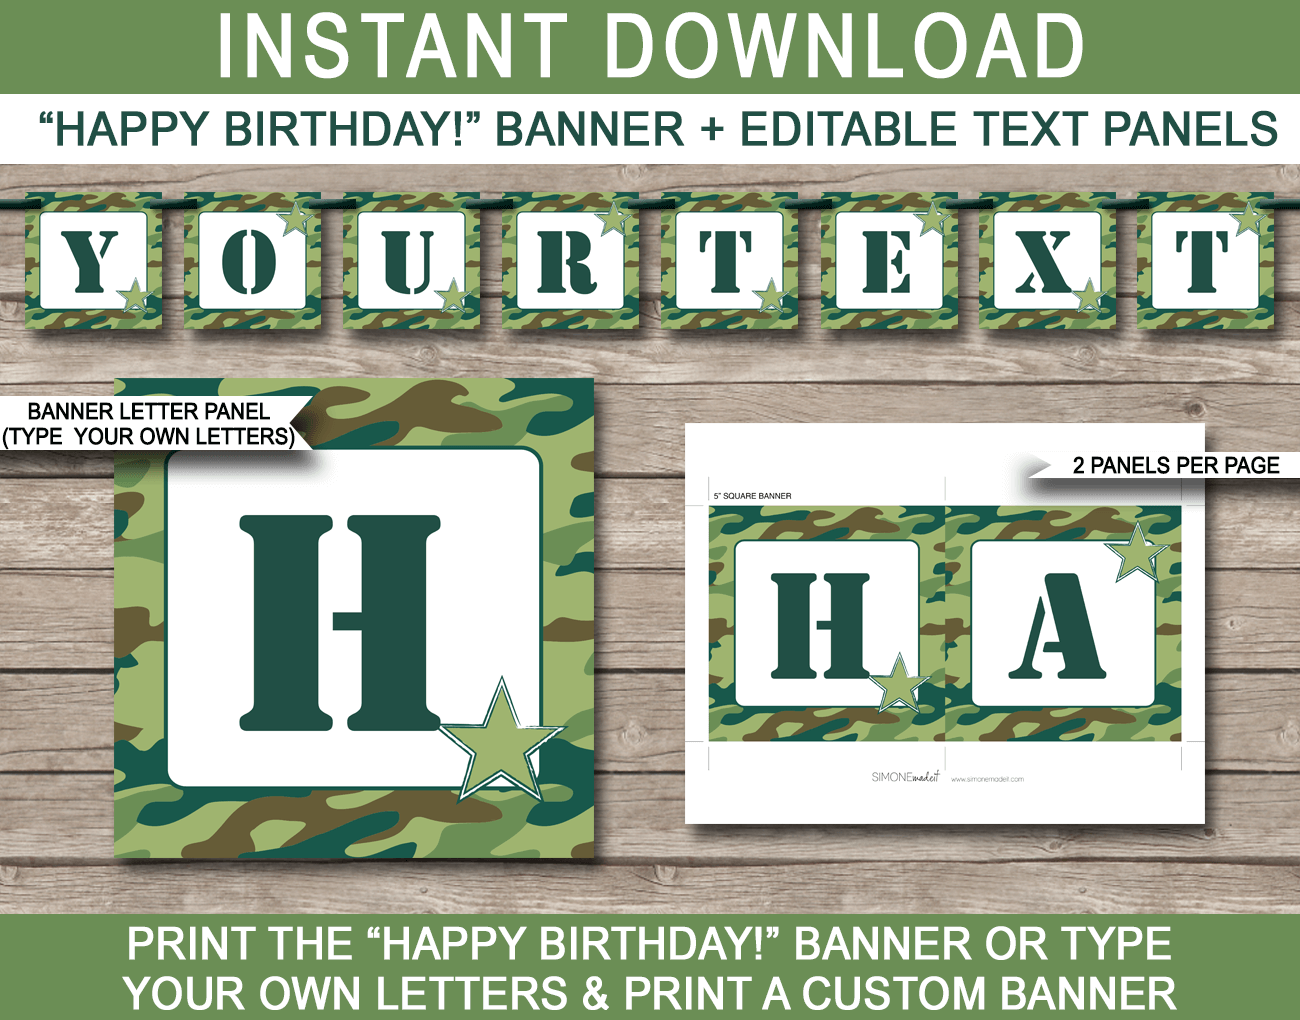 Army Camo Banner Template - Camo Bunting - Happy Birthday Banner - Birthday Party - Editable and Printable DIY Template - INSTANT DOWNLOAD $4.50 via simonemadeit.com